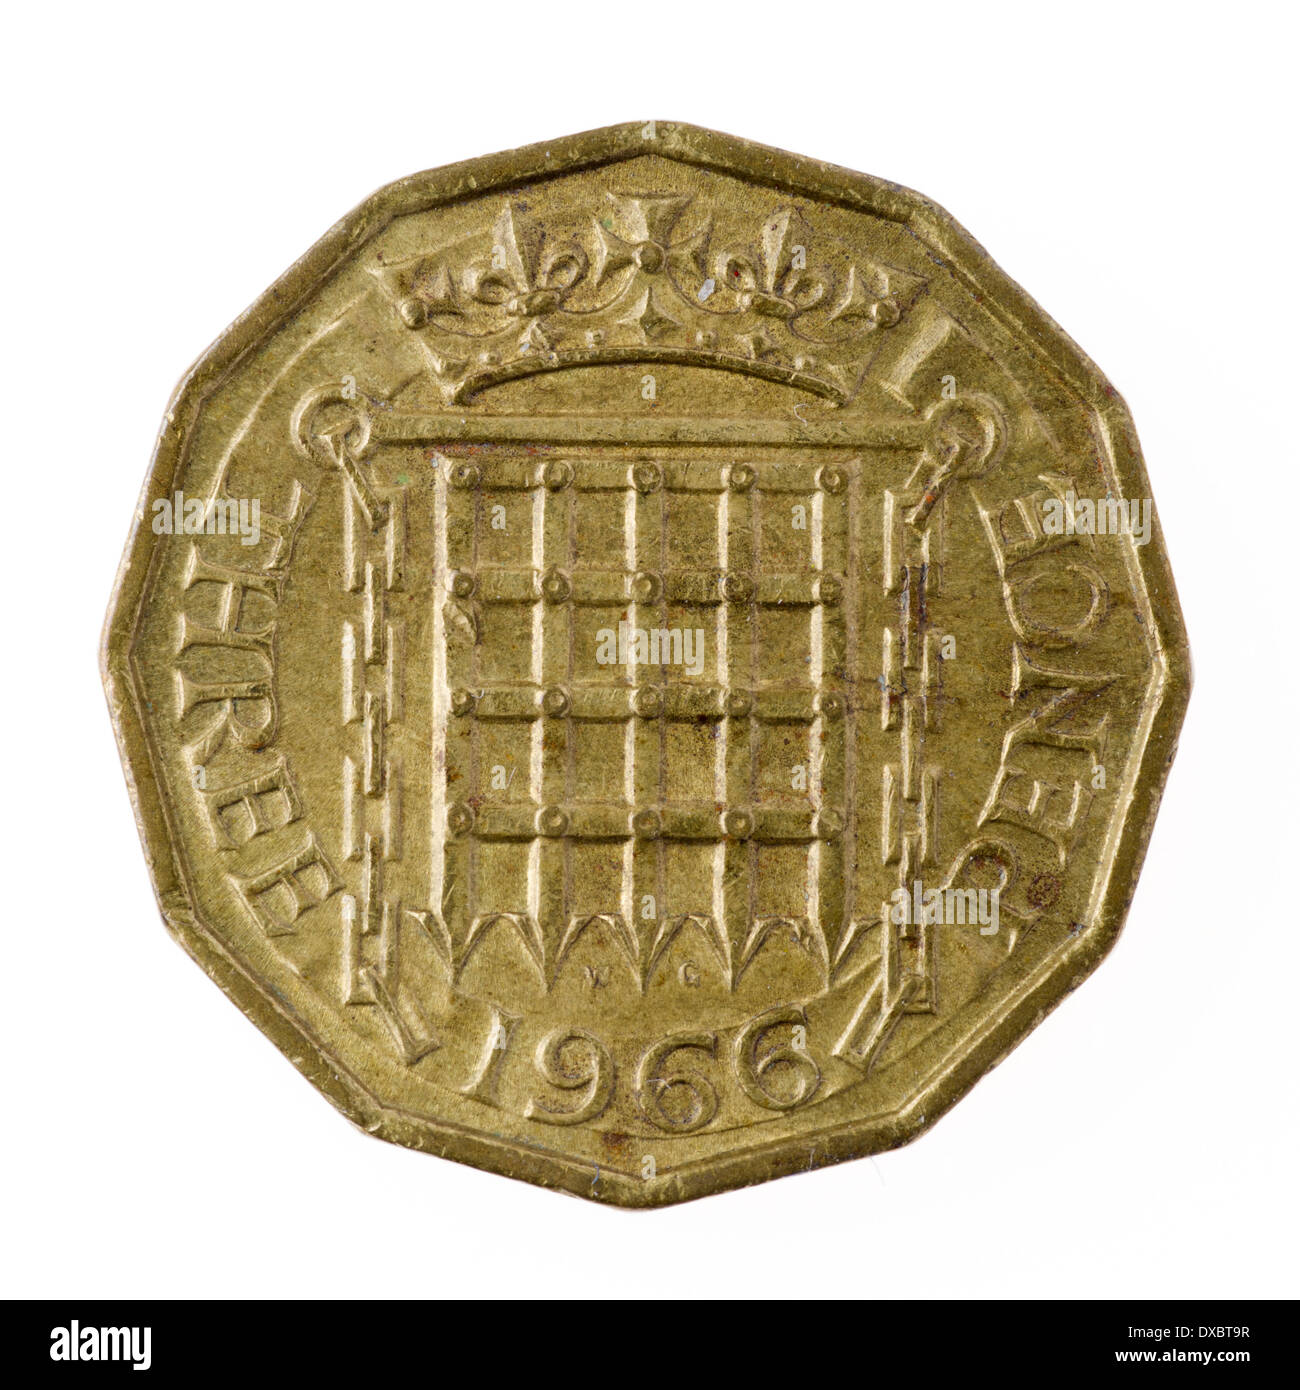 Old British three pence coin - Stock Image